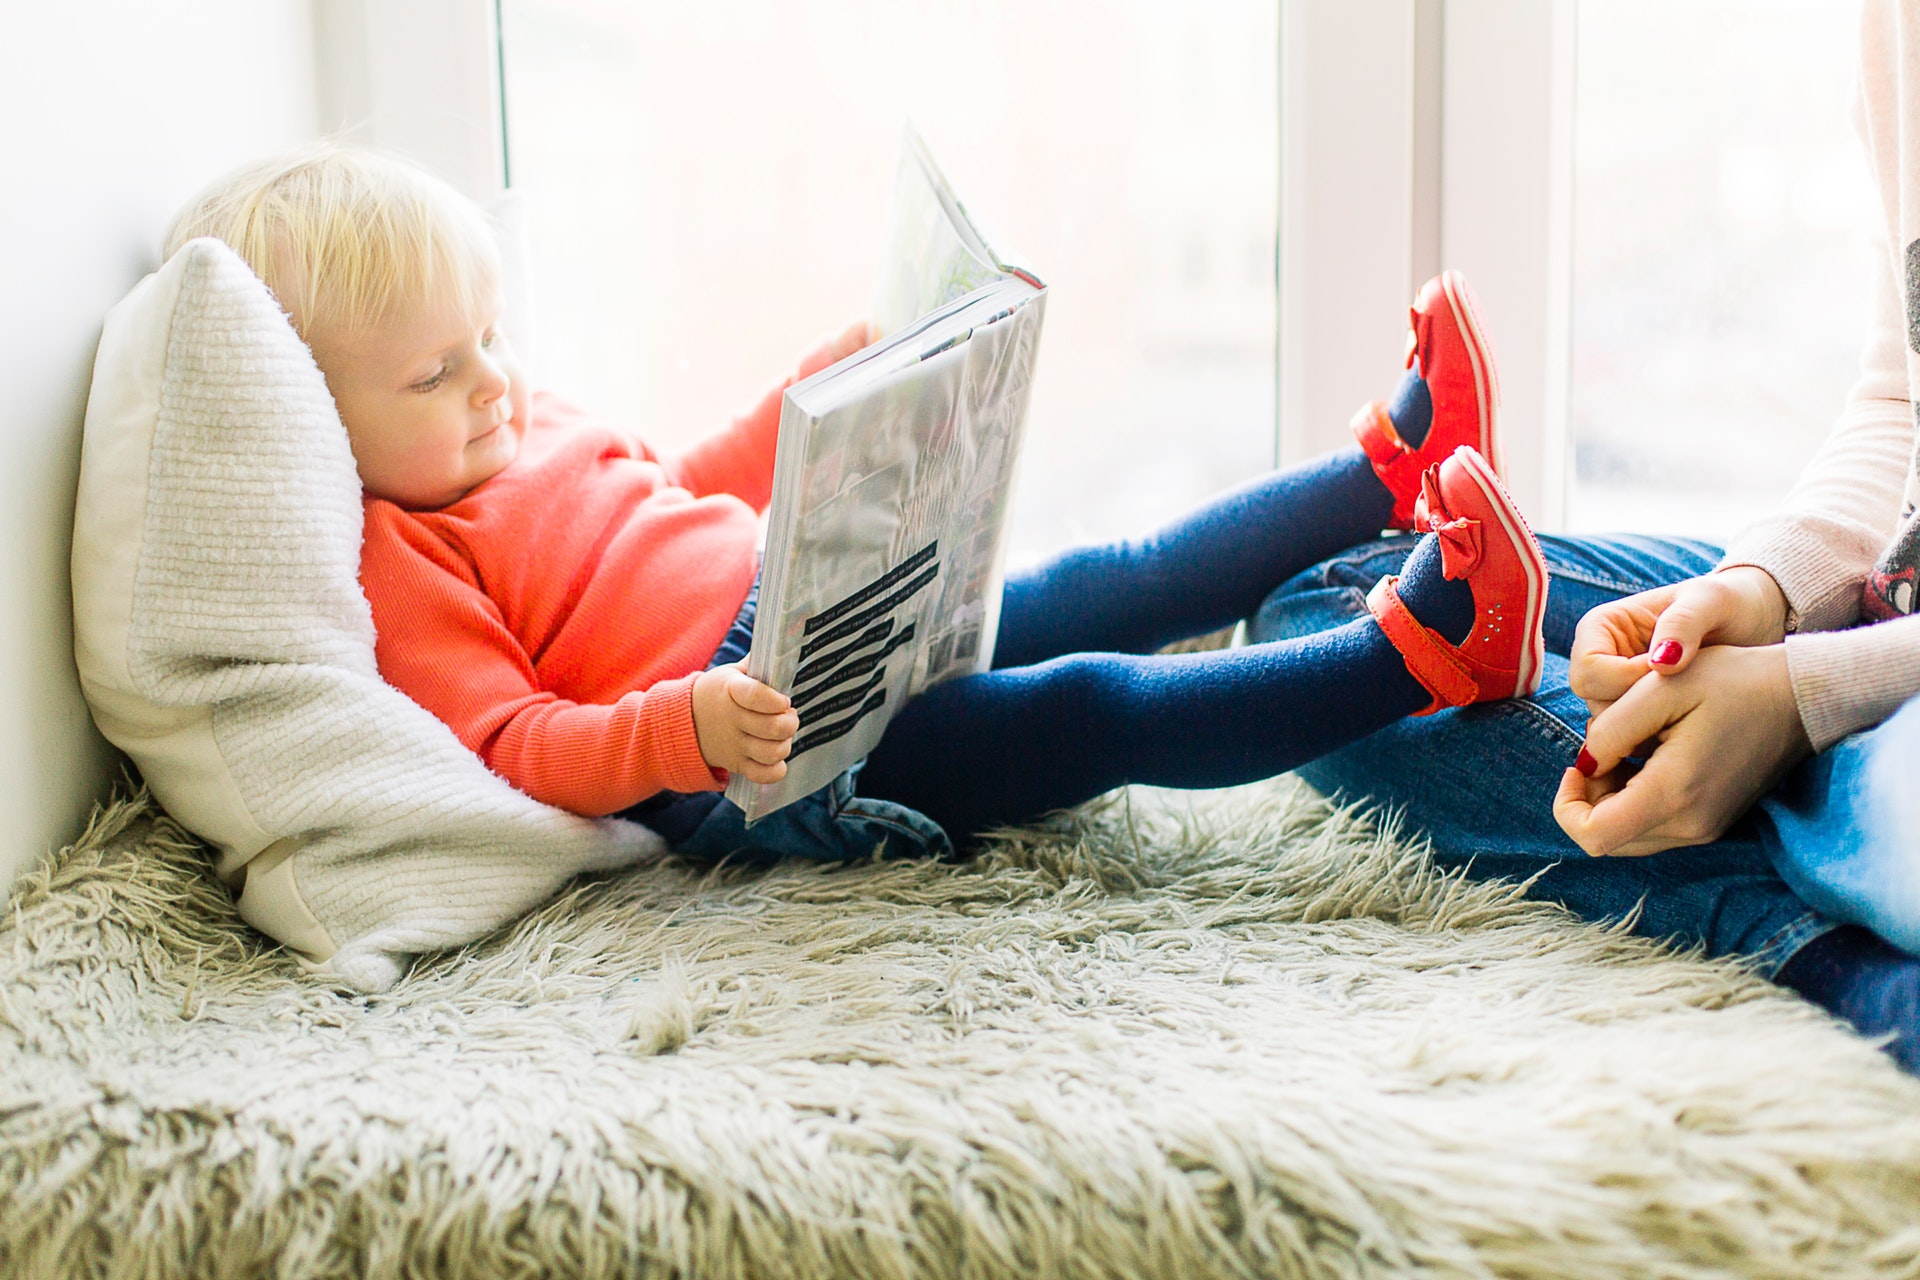 In the era of digital communication, we lose the ability to read and understand